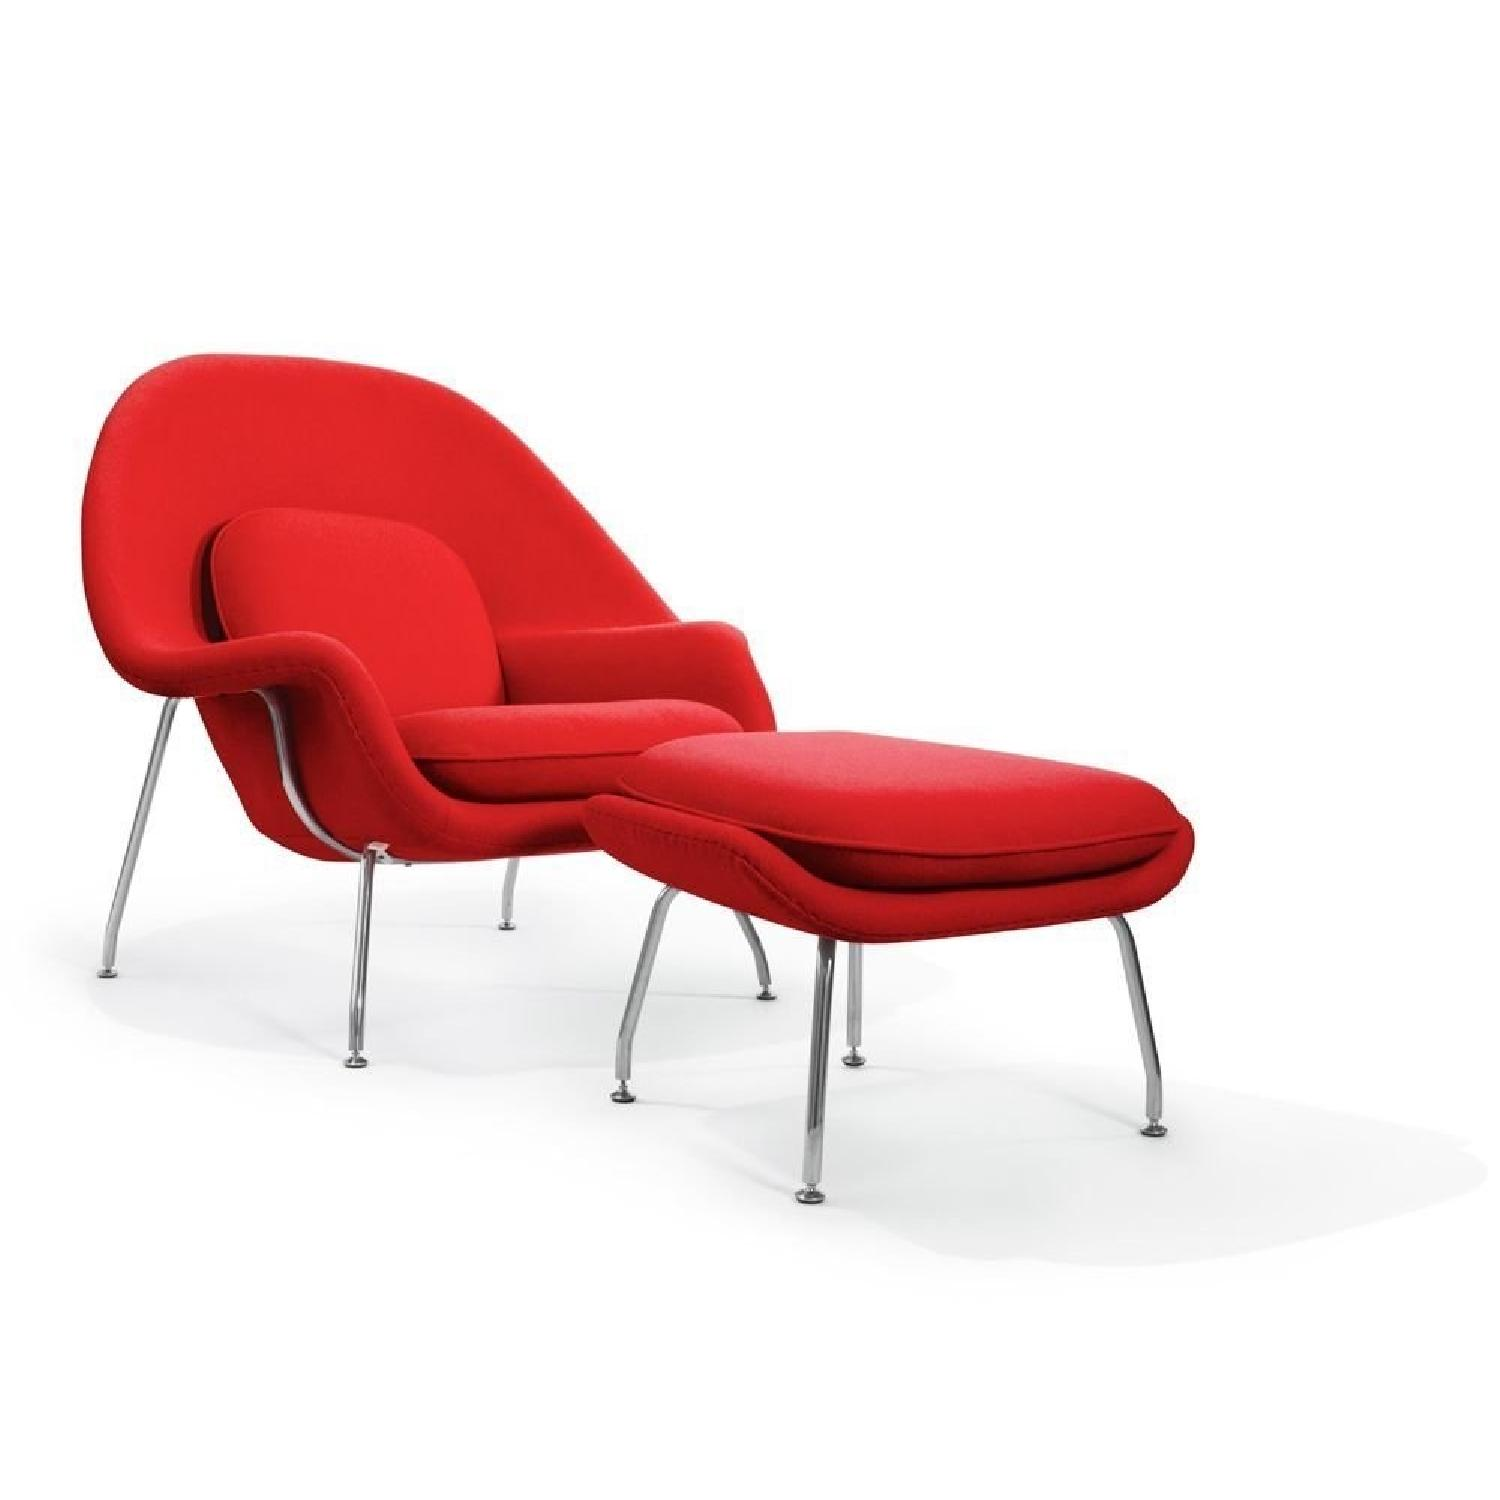 Manhatan Home Design Womb Chair in Red